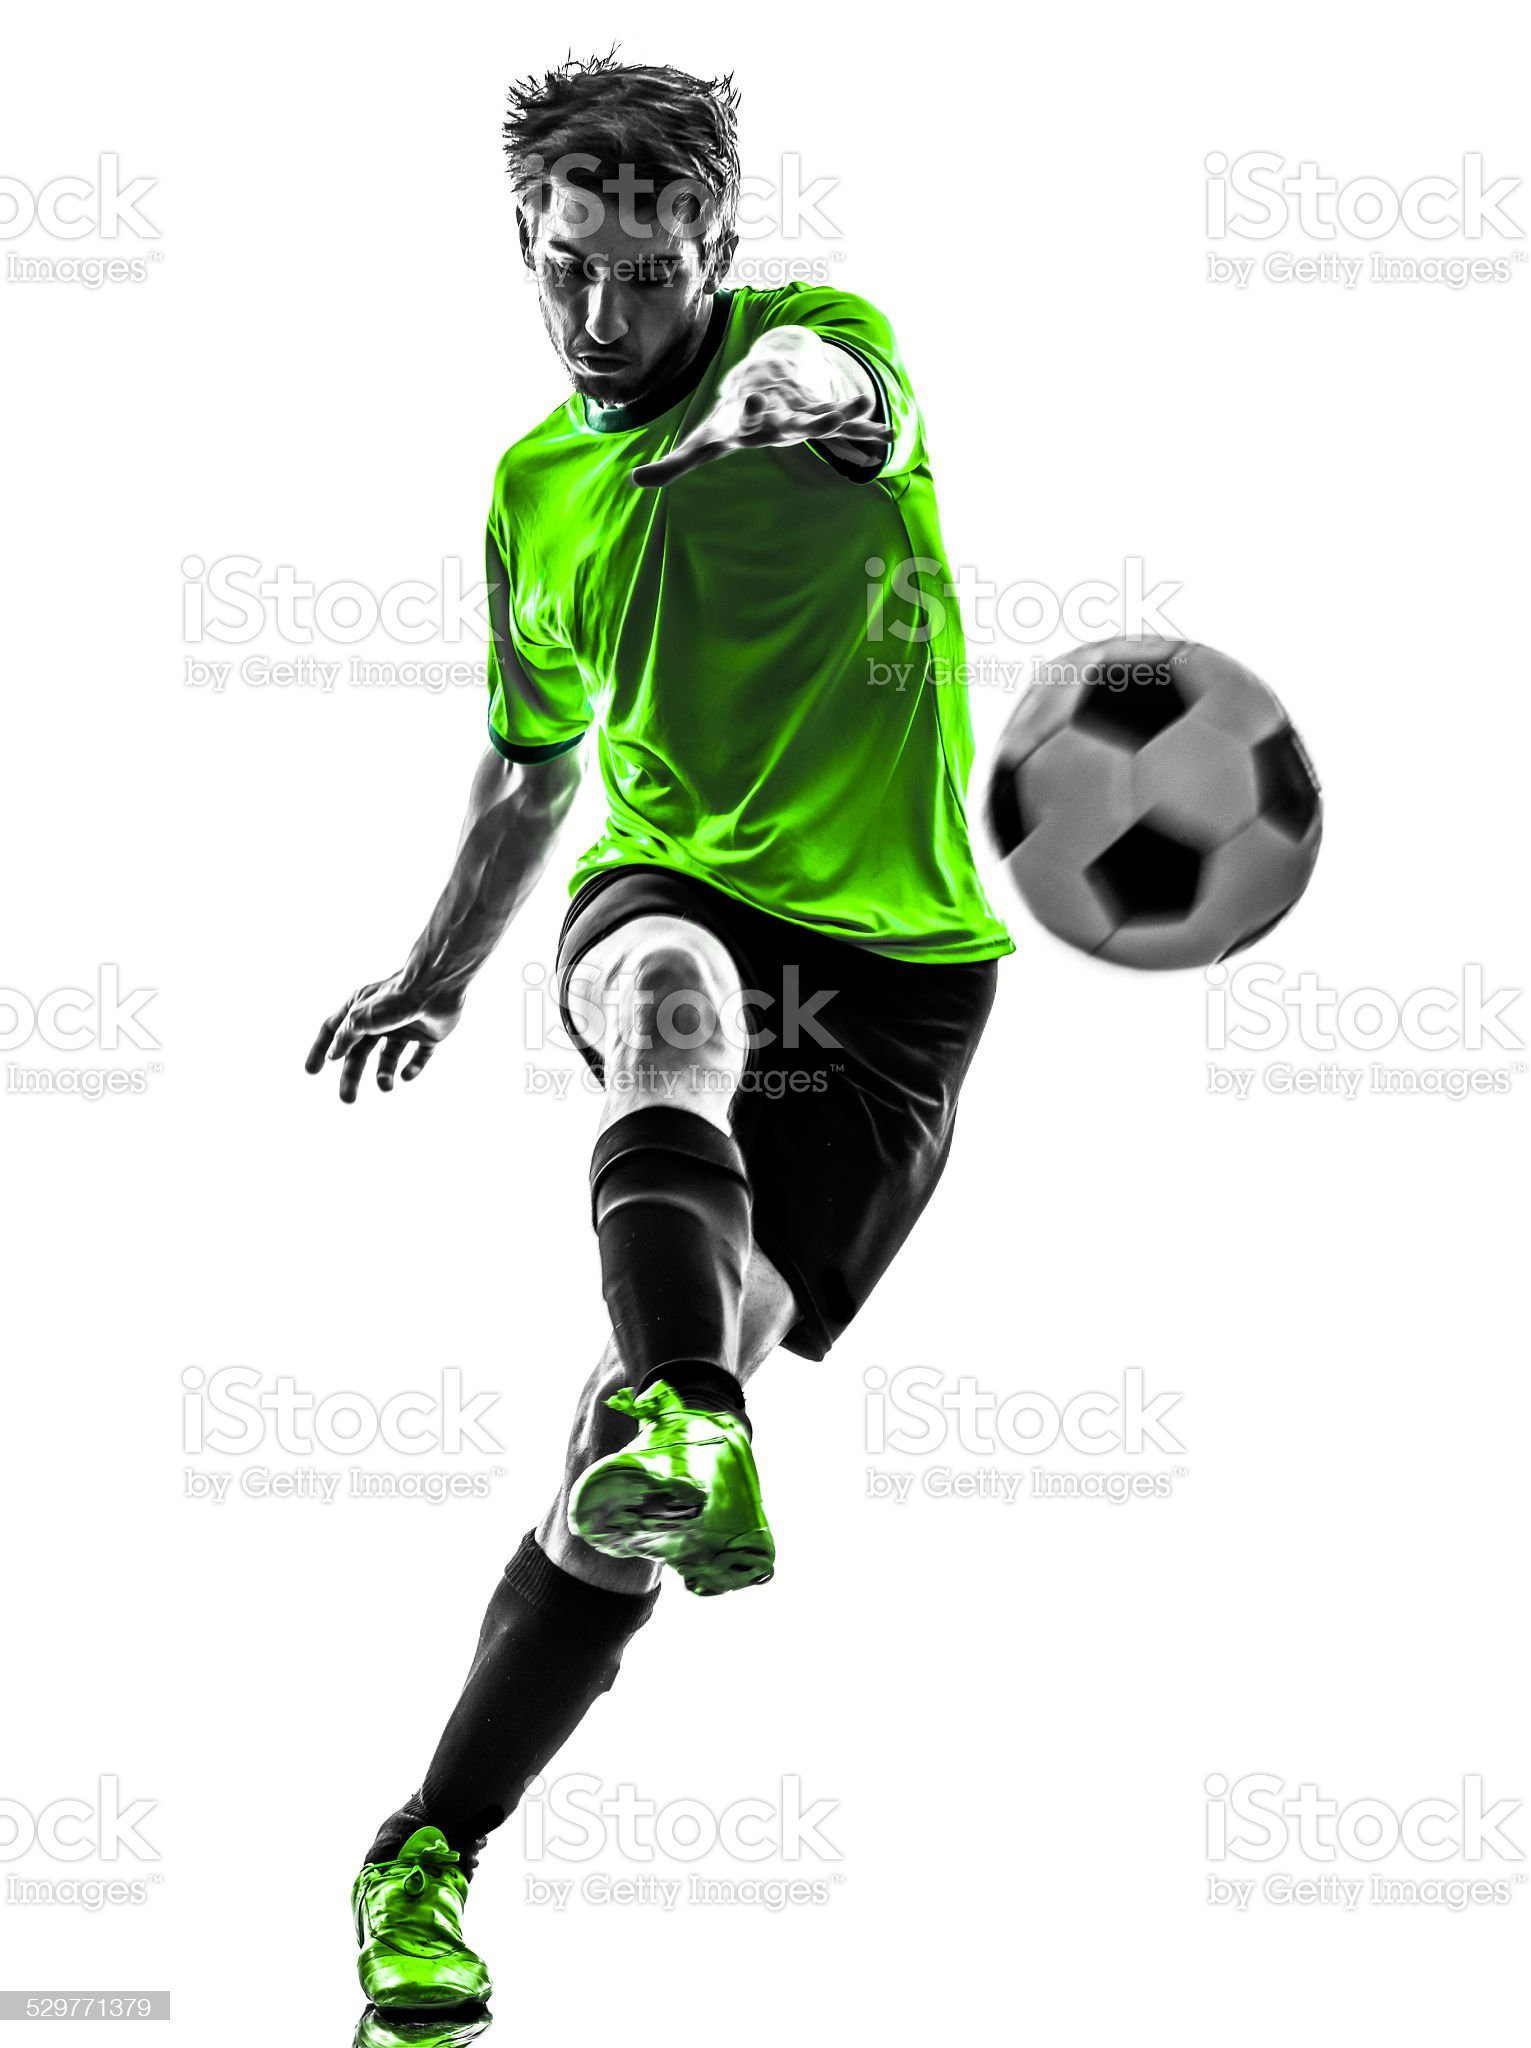 soccer football player young man kicking silhouette royalty-free stock photo